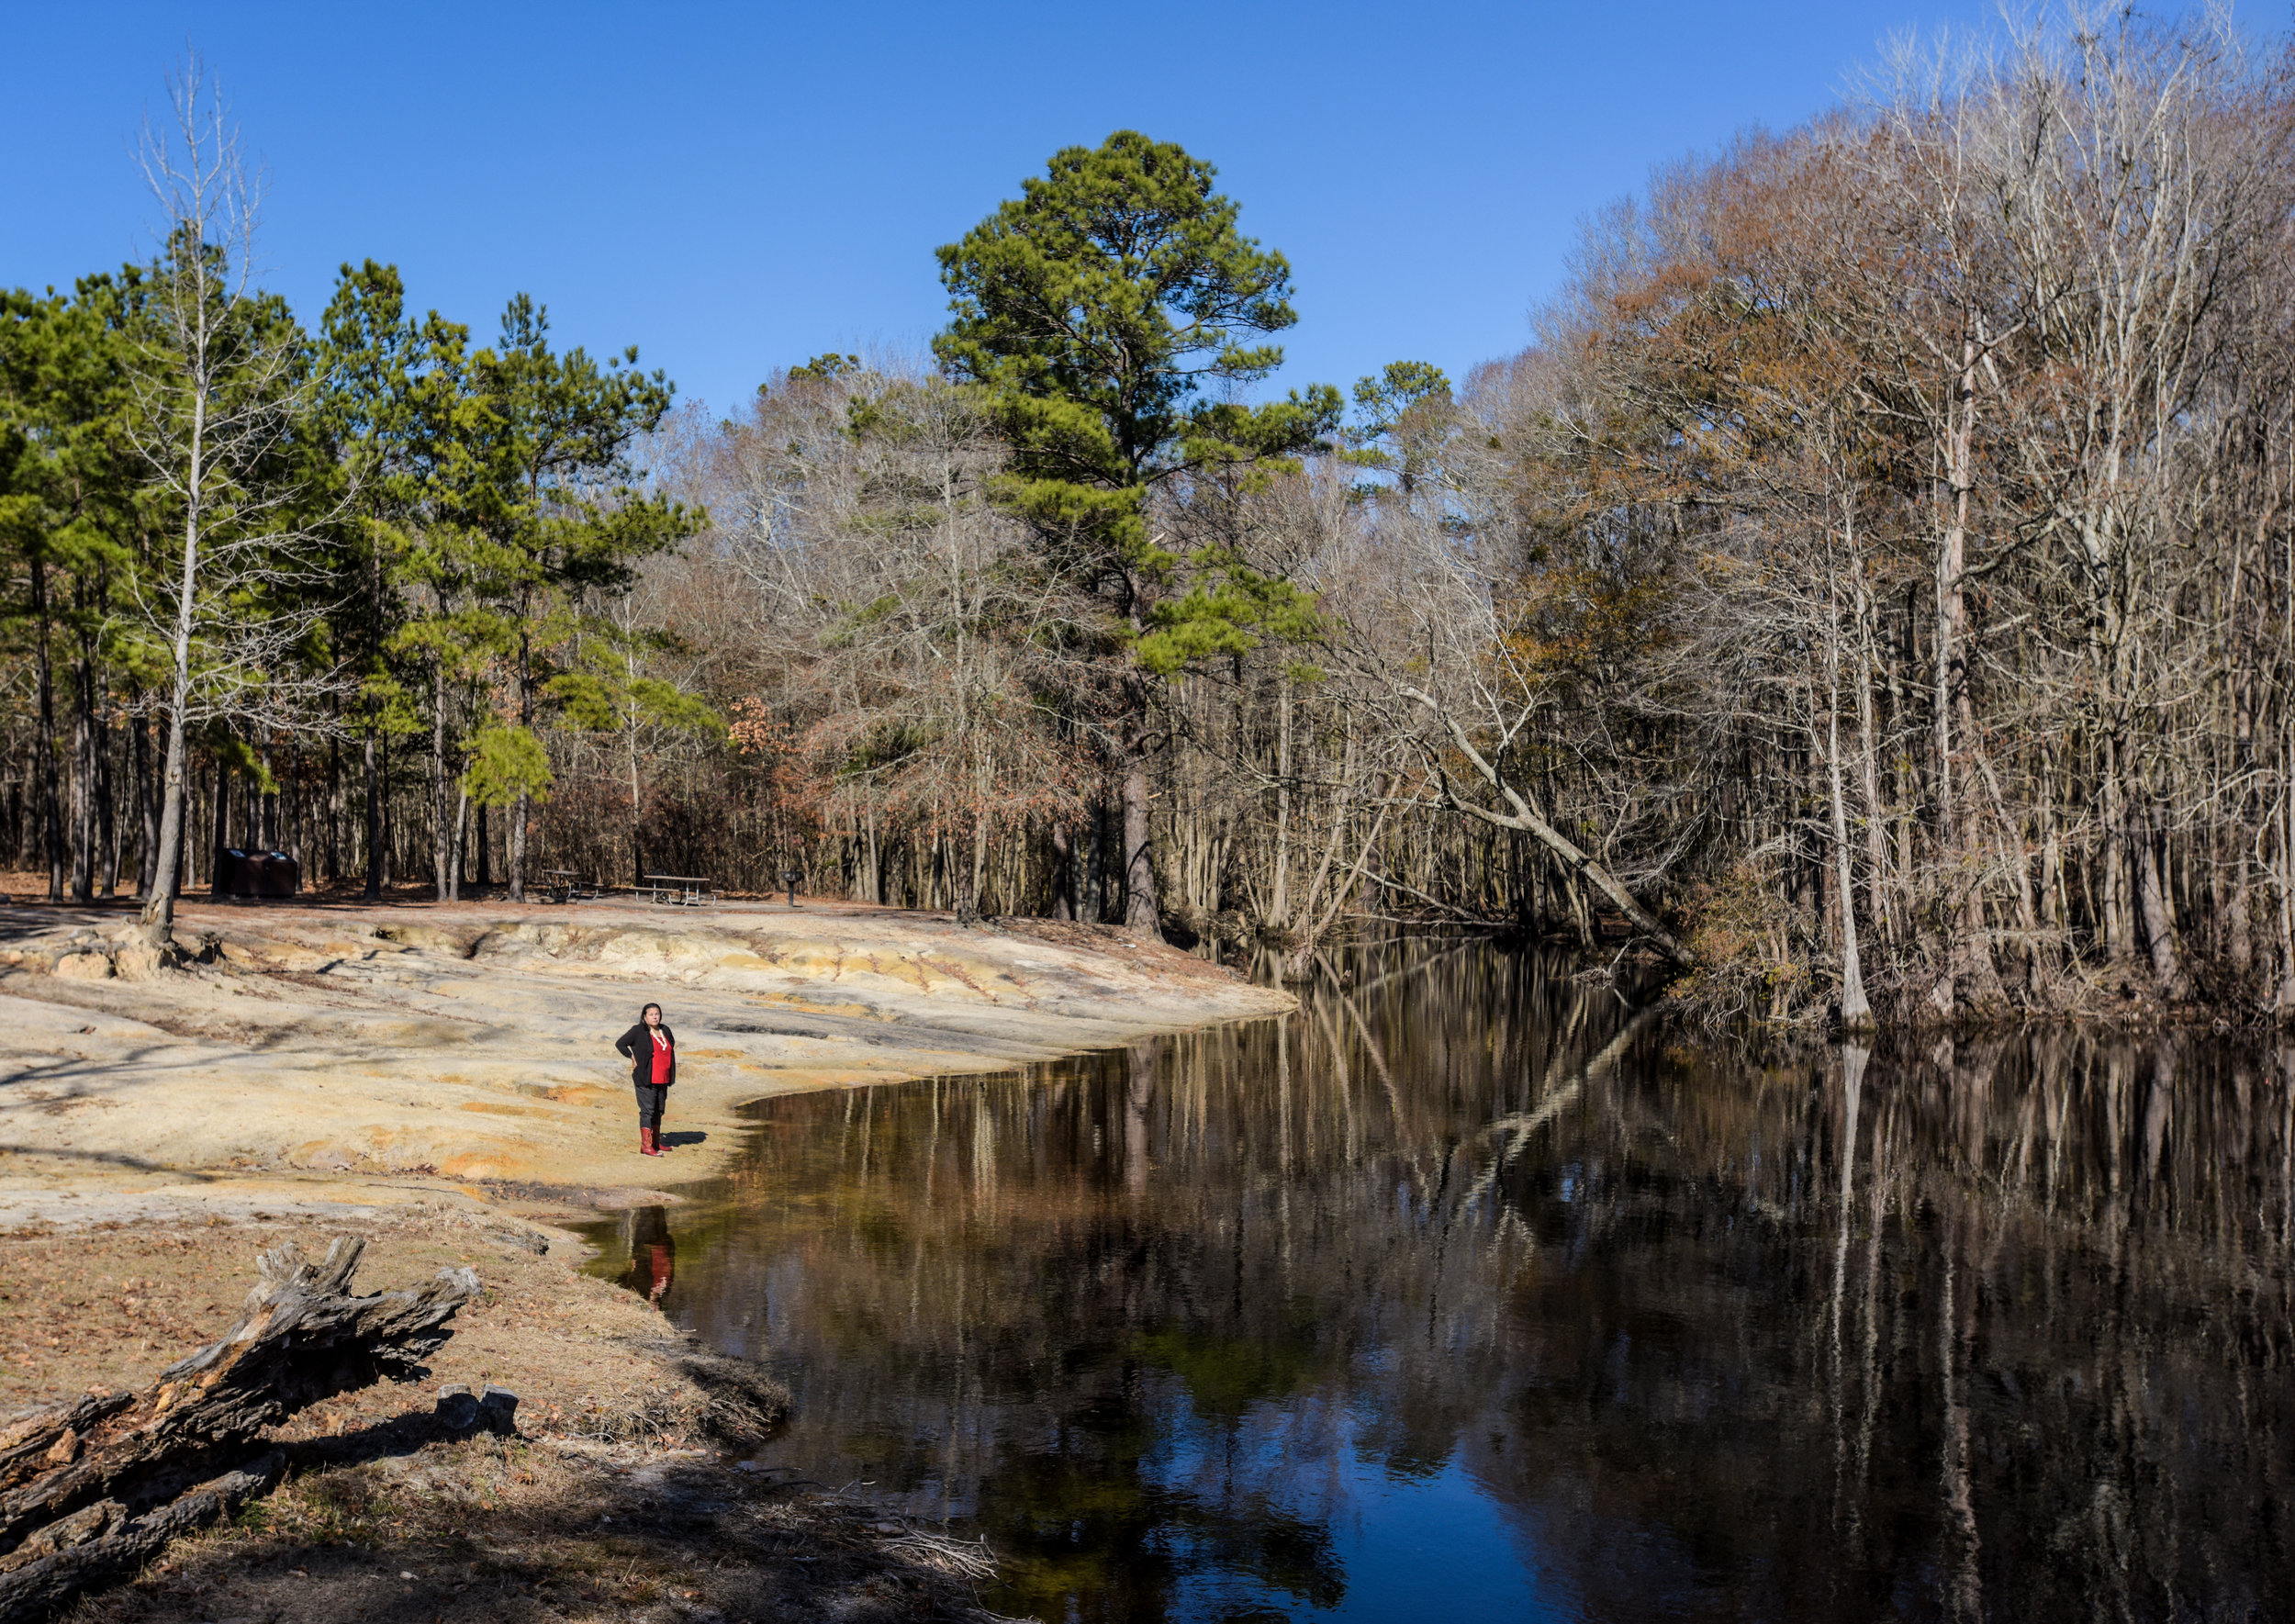 Chavis on the bank of the Lumber River, commonly called the Lumbee River.